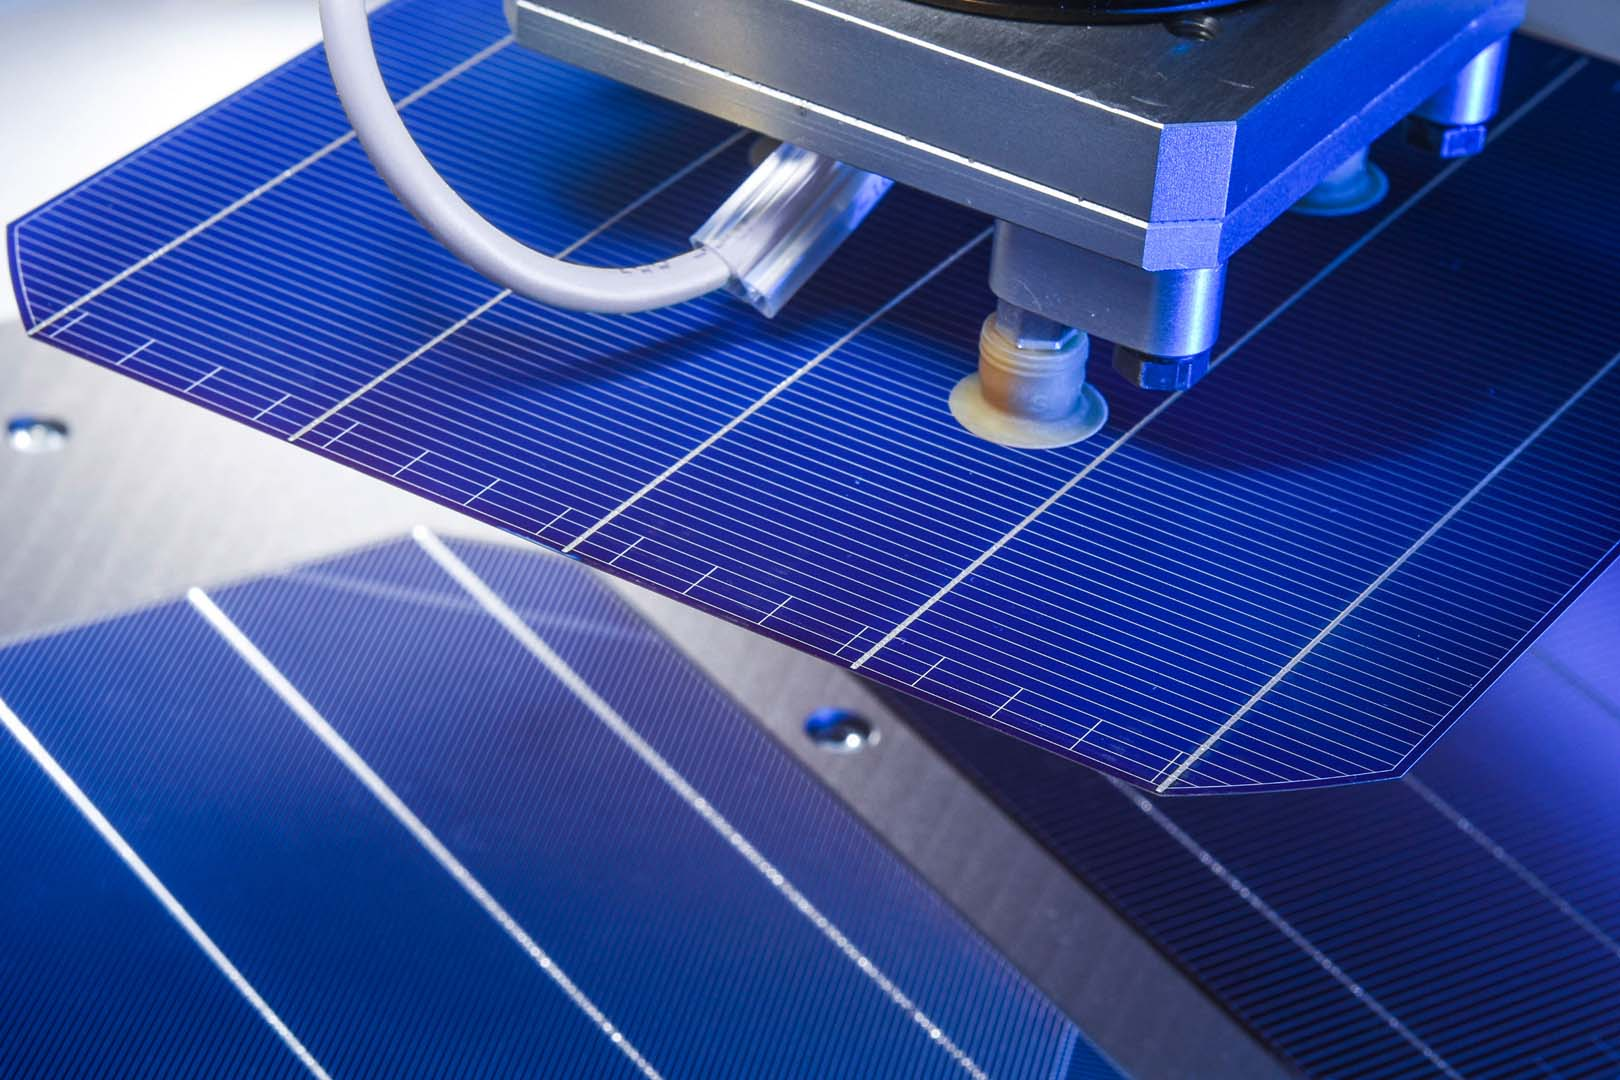 Technology investments into advanced PV cell manufacturing have been at record levels in the past few years, with high-efficiency concepts seeing investment levels not seen since the days of turn-key thin-film lines a decade ago. Image: Fraunhofer ISE